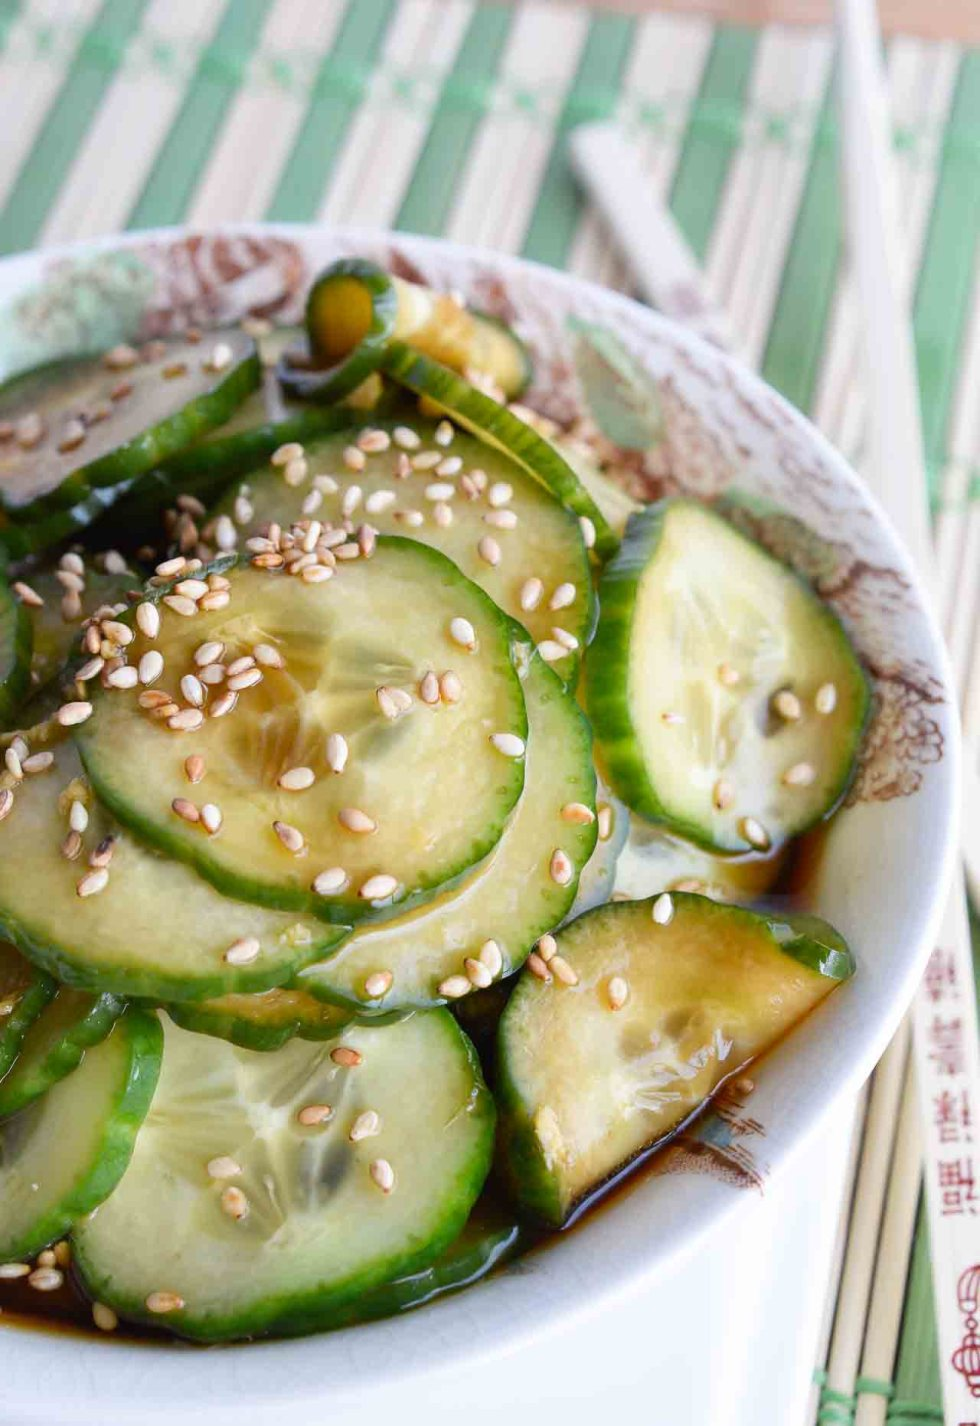 This Cucumber Salad Recipe is a quick, easy side dish that is perfect for summer! Thinly sliced cucumbers in a soy sauce sesame seed dressing. A cool vegan cucumber salad with Asian flair!